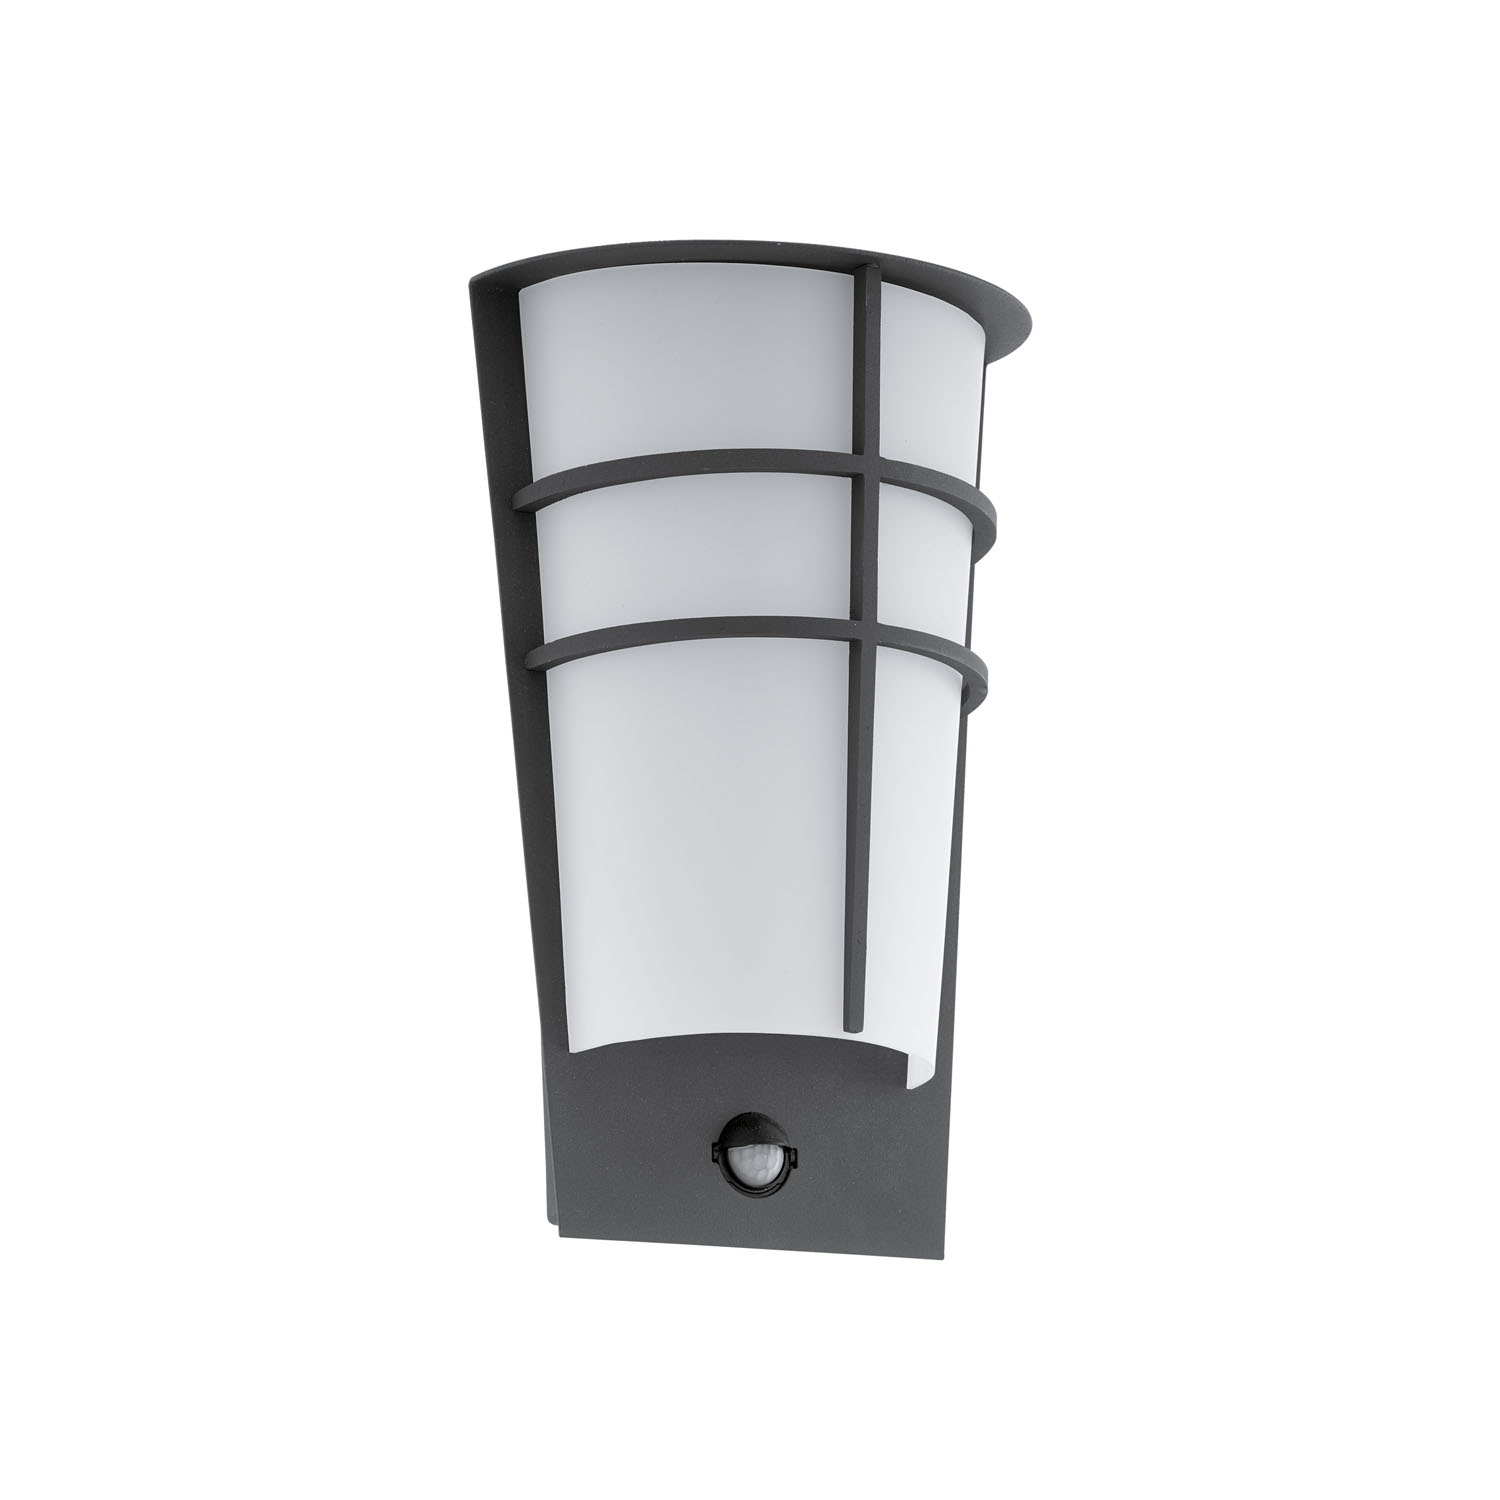 Image of Eglo Breganzo LED Outdoor Light, Anthracite